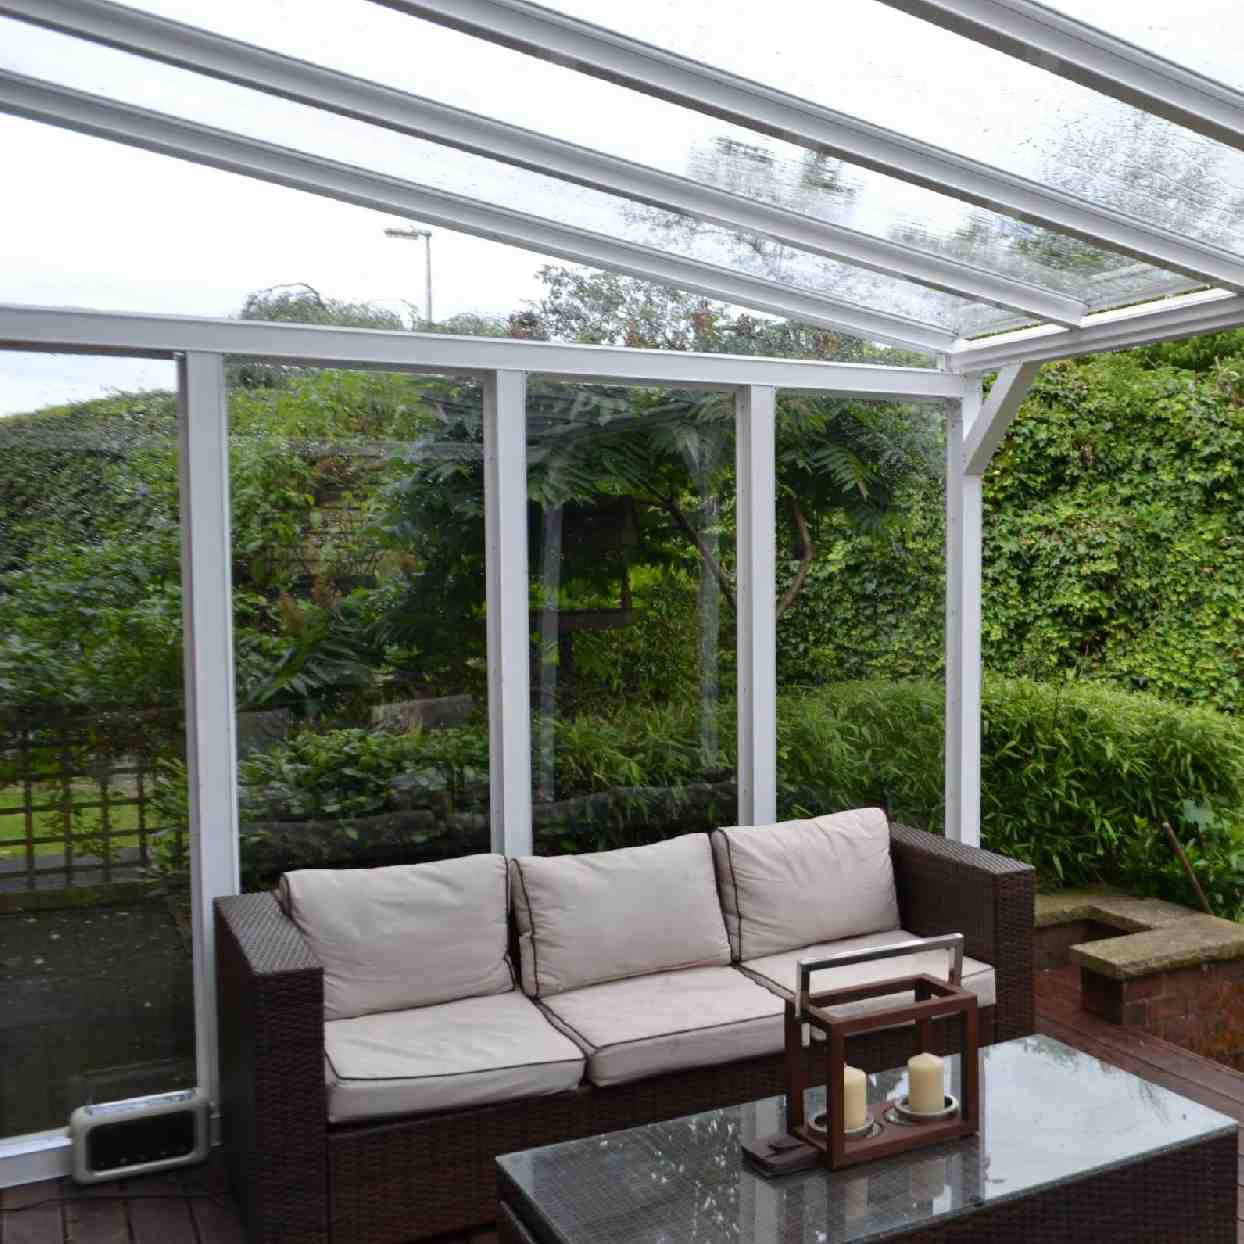 Buy Omega Verandah with 6mm Glass Clear Plate Polycarbonate Glazing - 3.5m (W) x 1.5m (P), (3) Supporting Posts online today